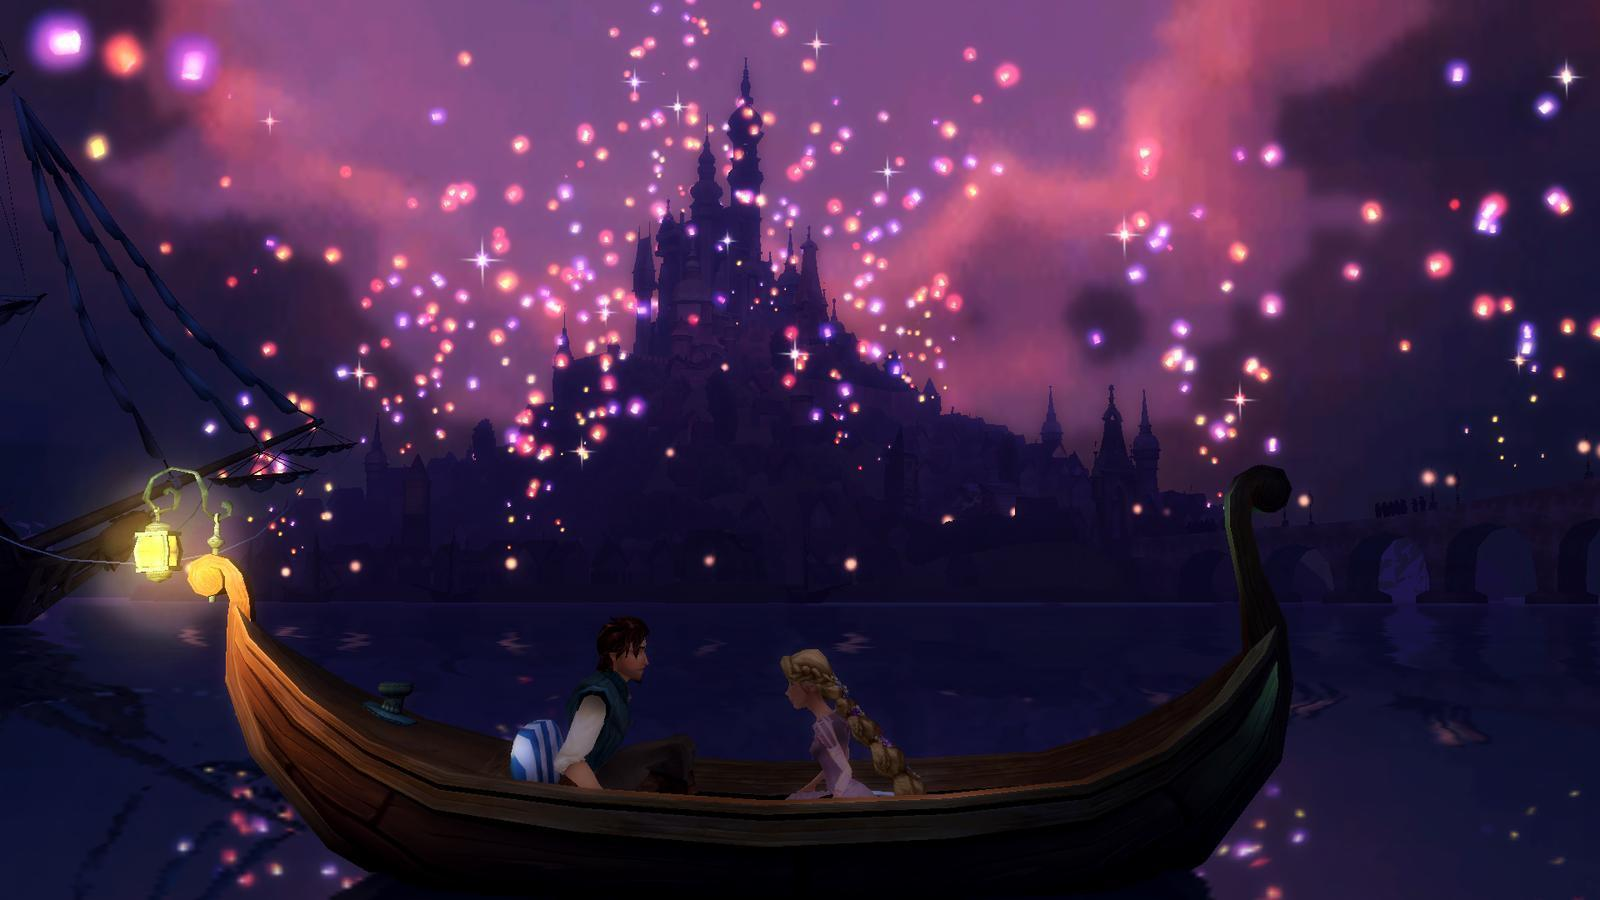 disney tangled wallpapers wallpaper cave